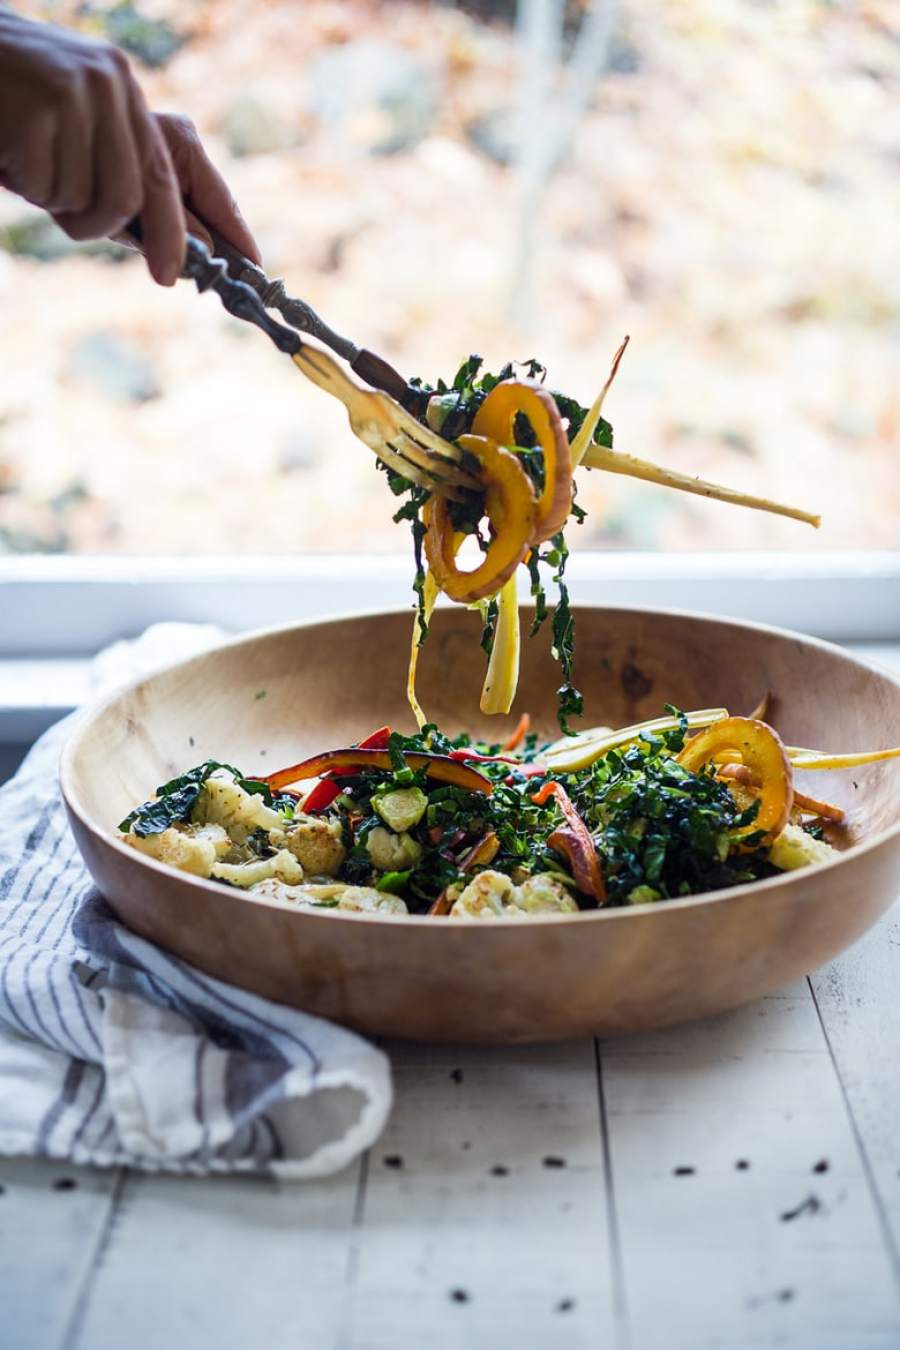 A hearty, healthy Roasted Fall Vegetable Salad with Maple Curry Vinaigrette on a bed of shredded kale and brussel sprouts. Vegan and GF.   www.feastingathome.com